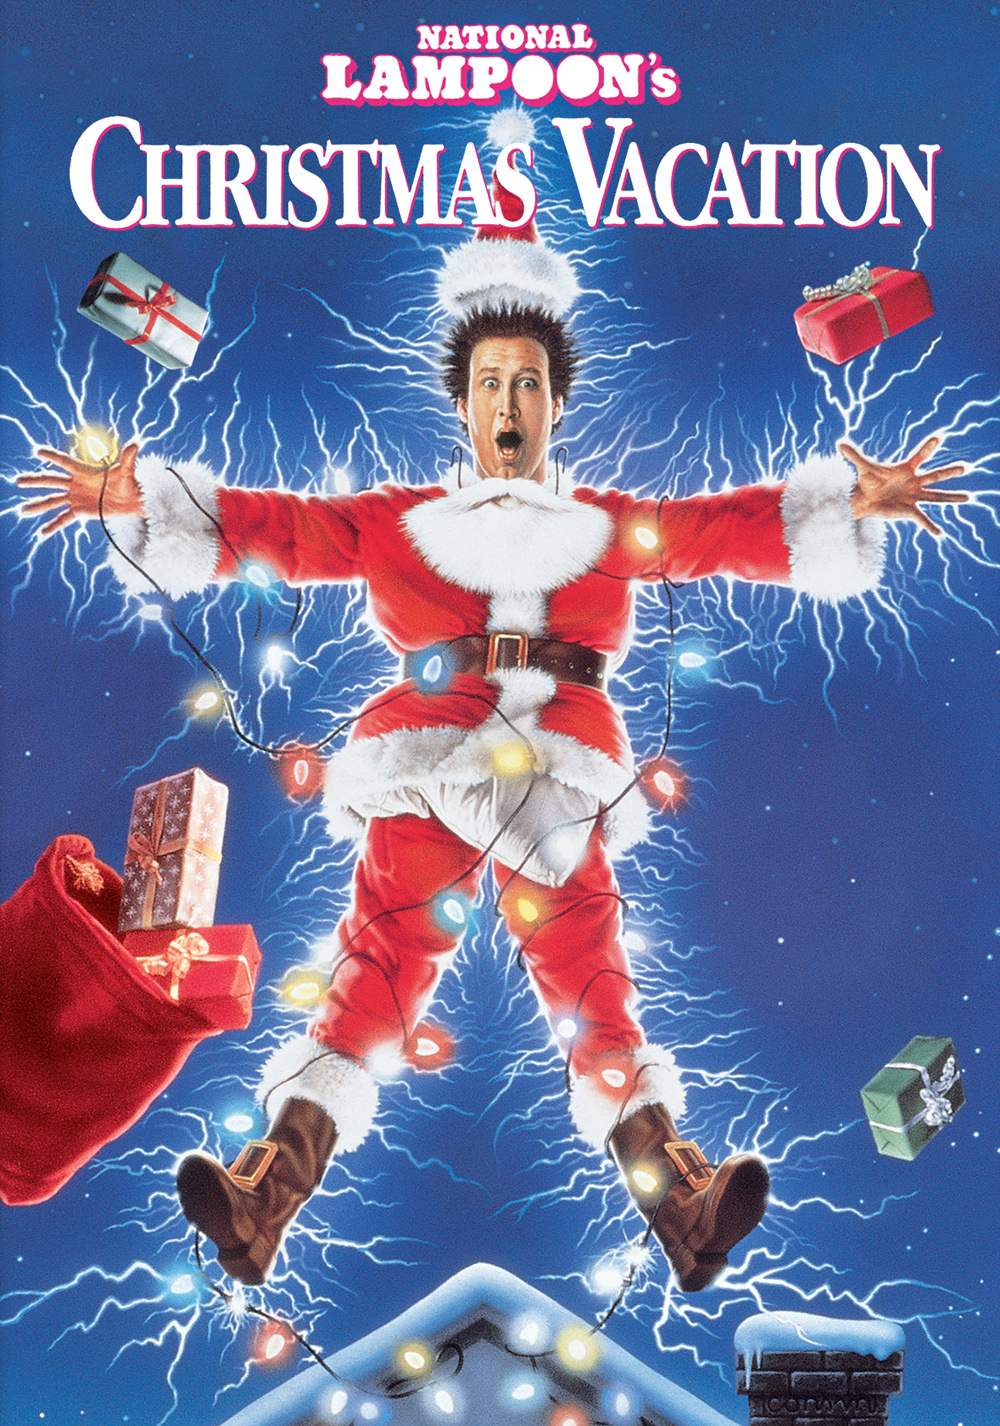 National Lampoon's Christmas Vacation - Hanford Fox Theatre